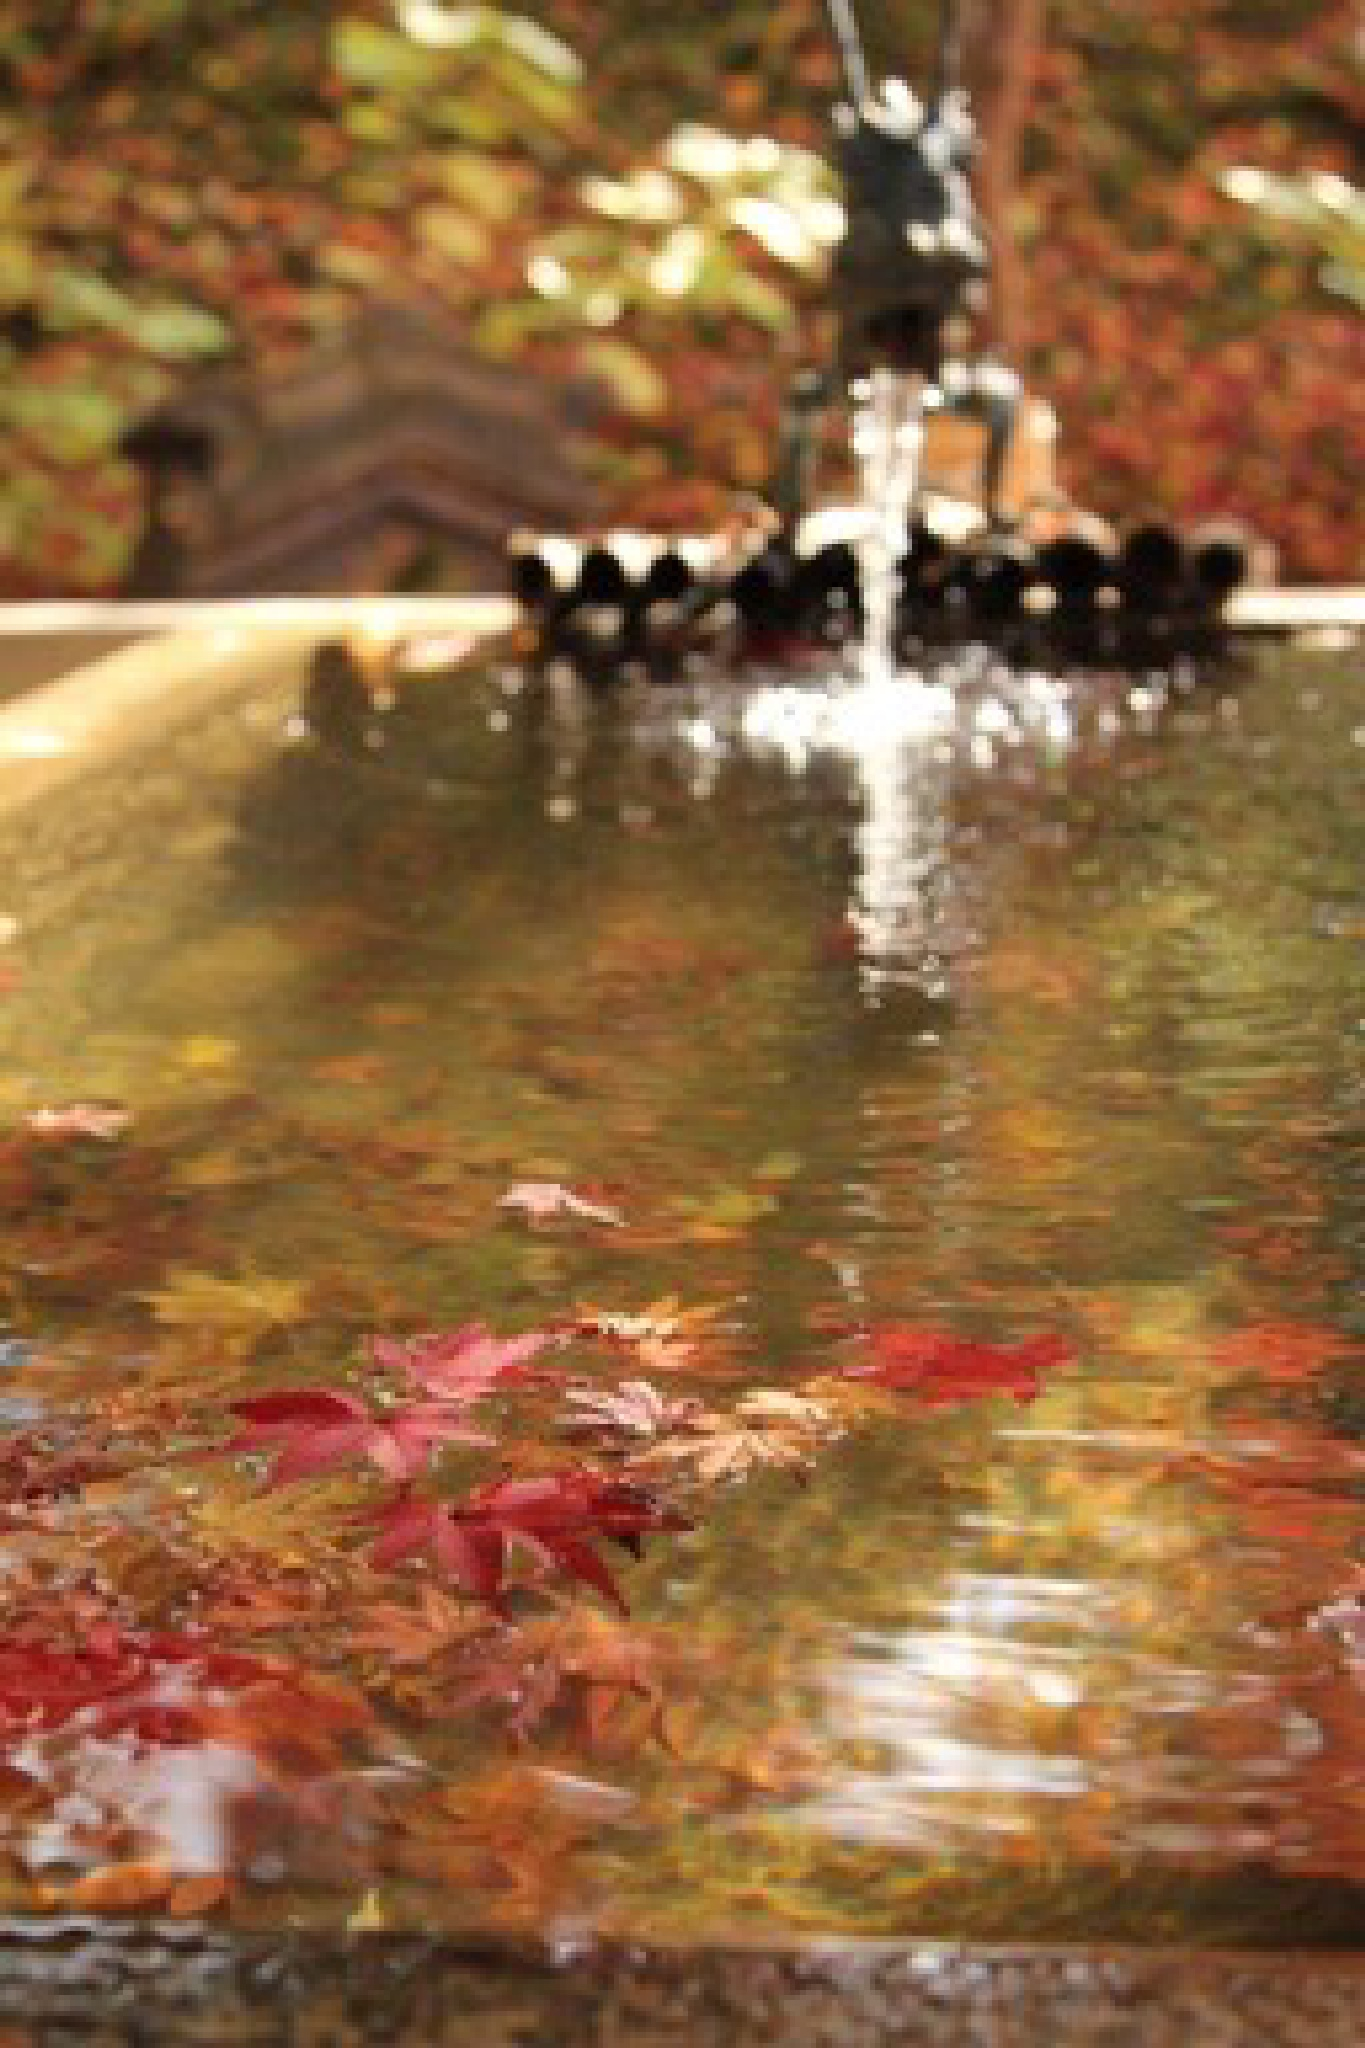 Water and Autumn by Brian Rudder